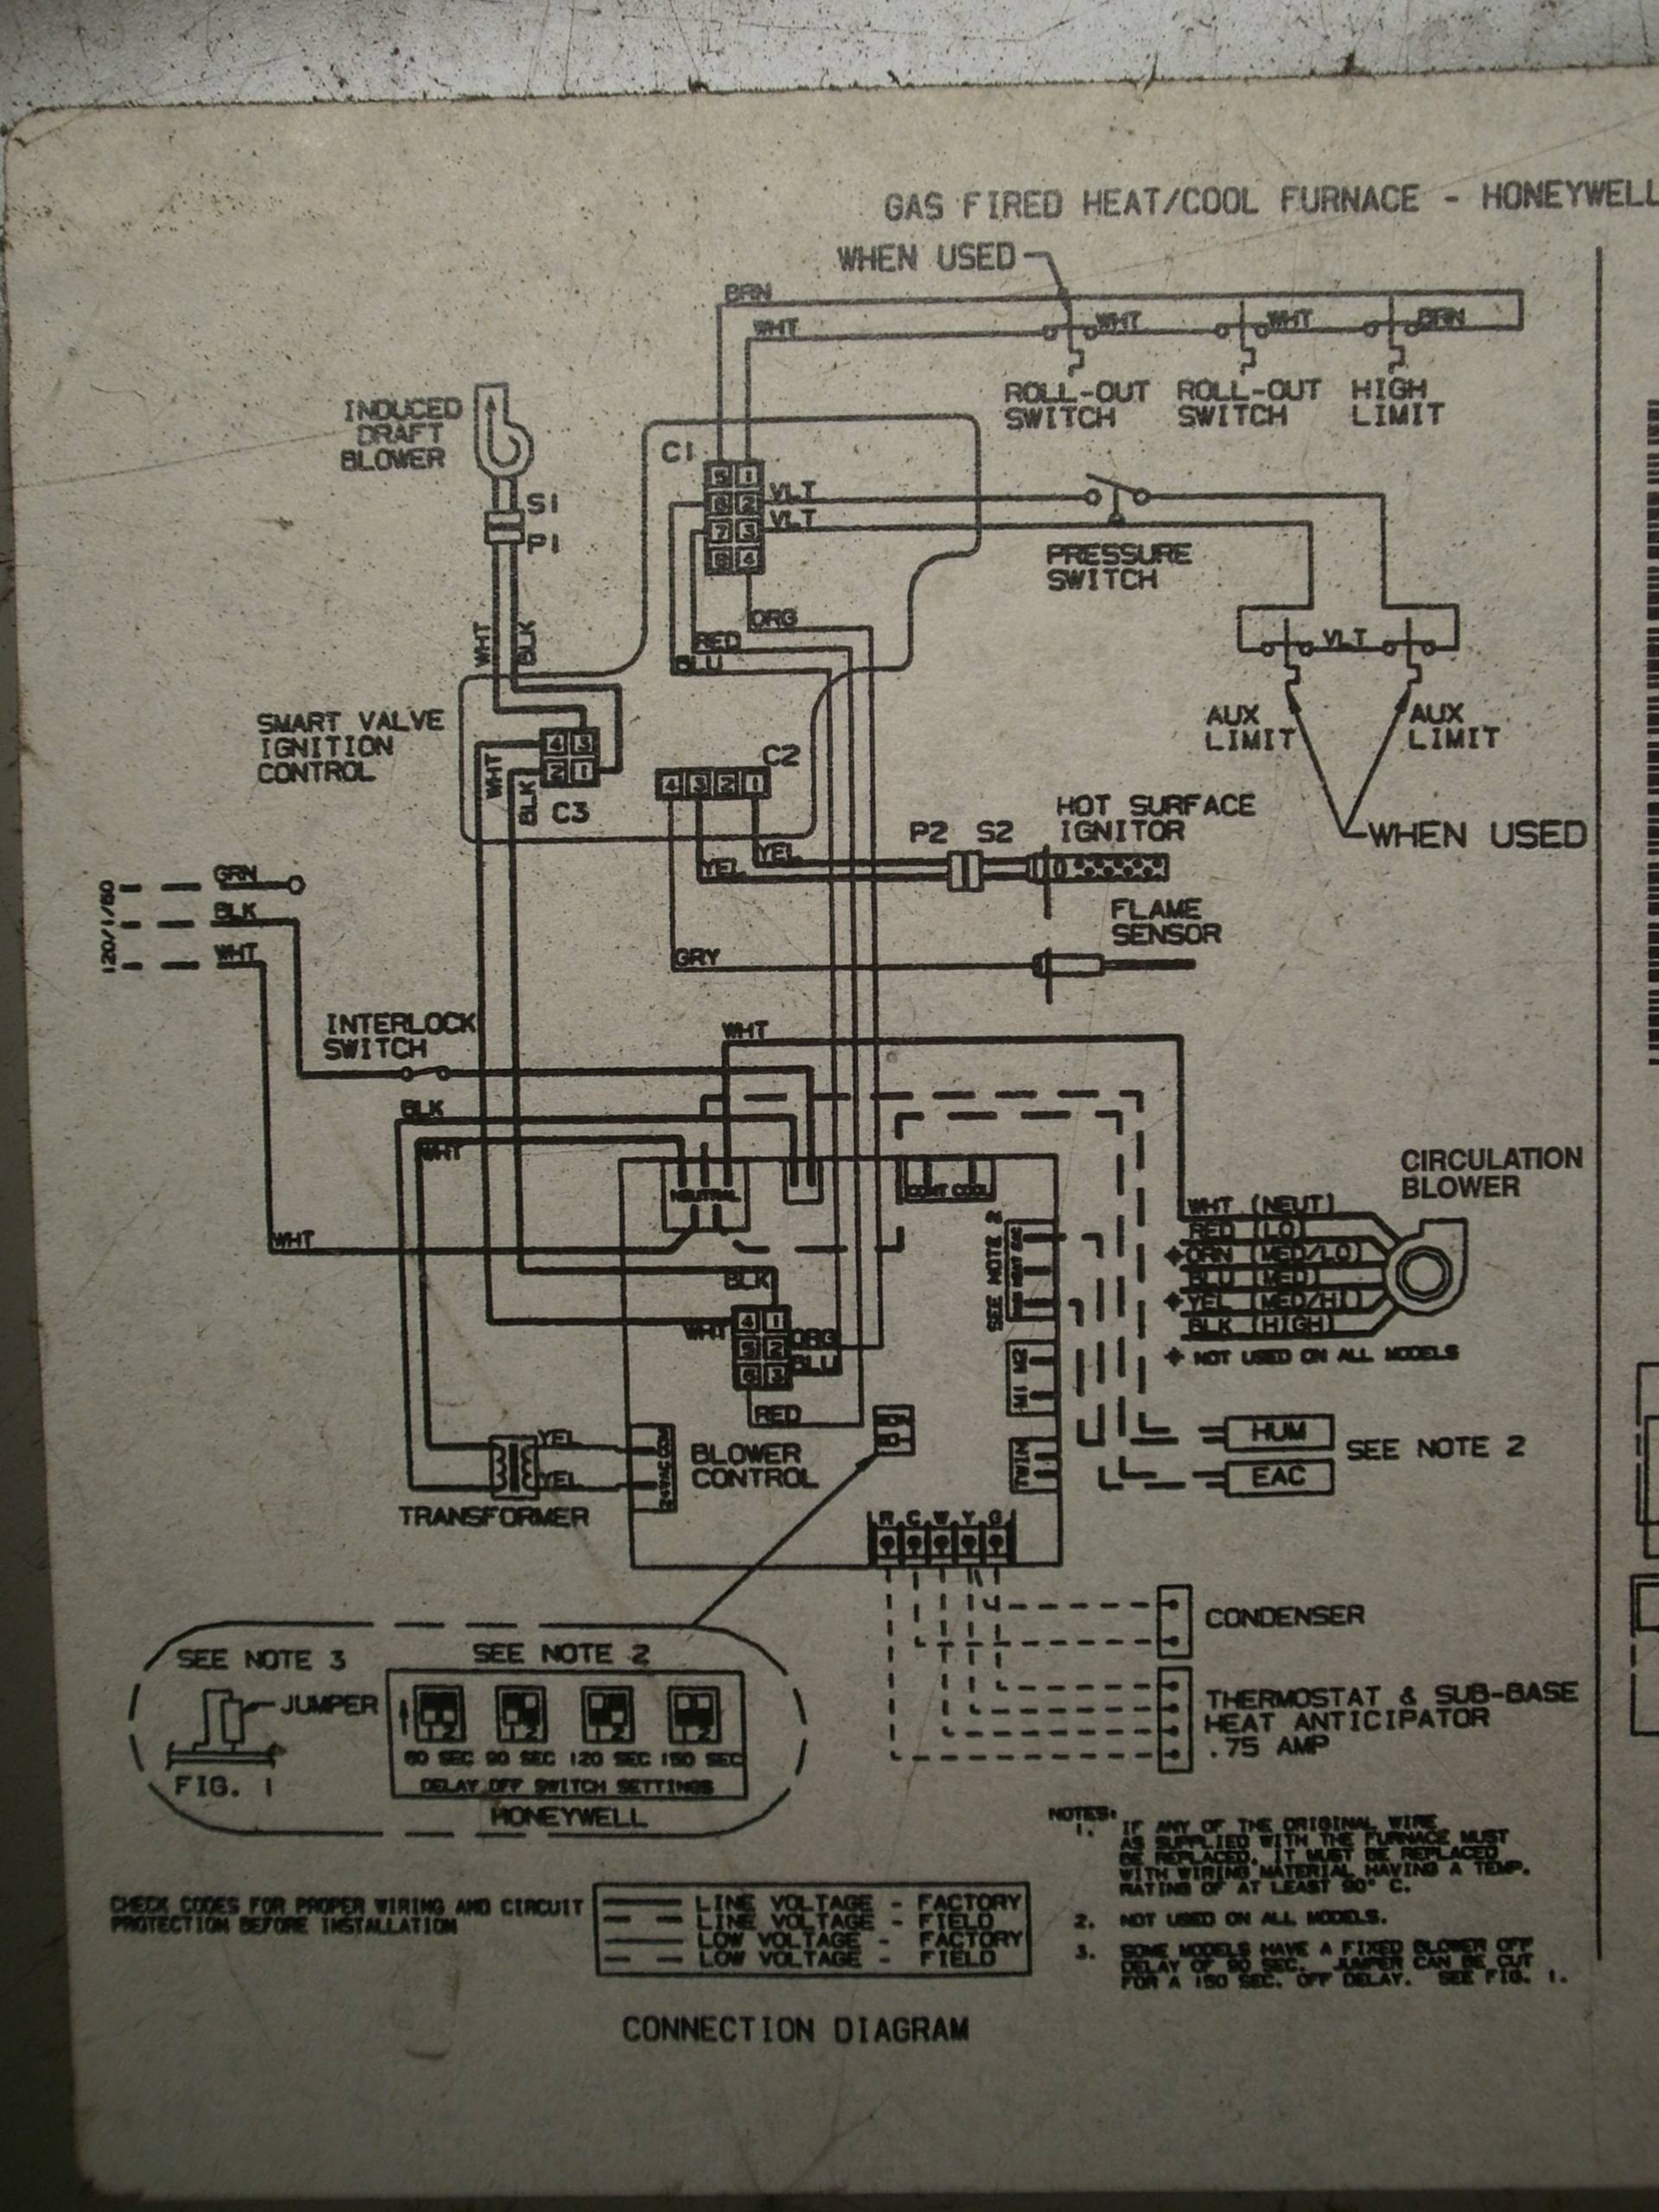 hight resolution of goodman hvac fan wiring diagram hvac troubleshoot ac issue no inside blower home improvementpart 1